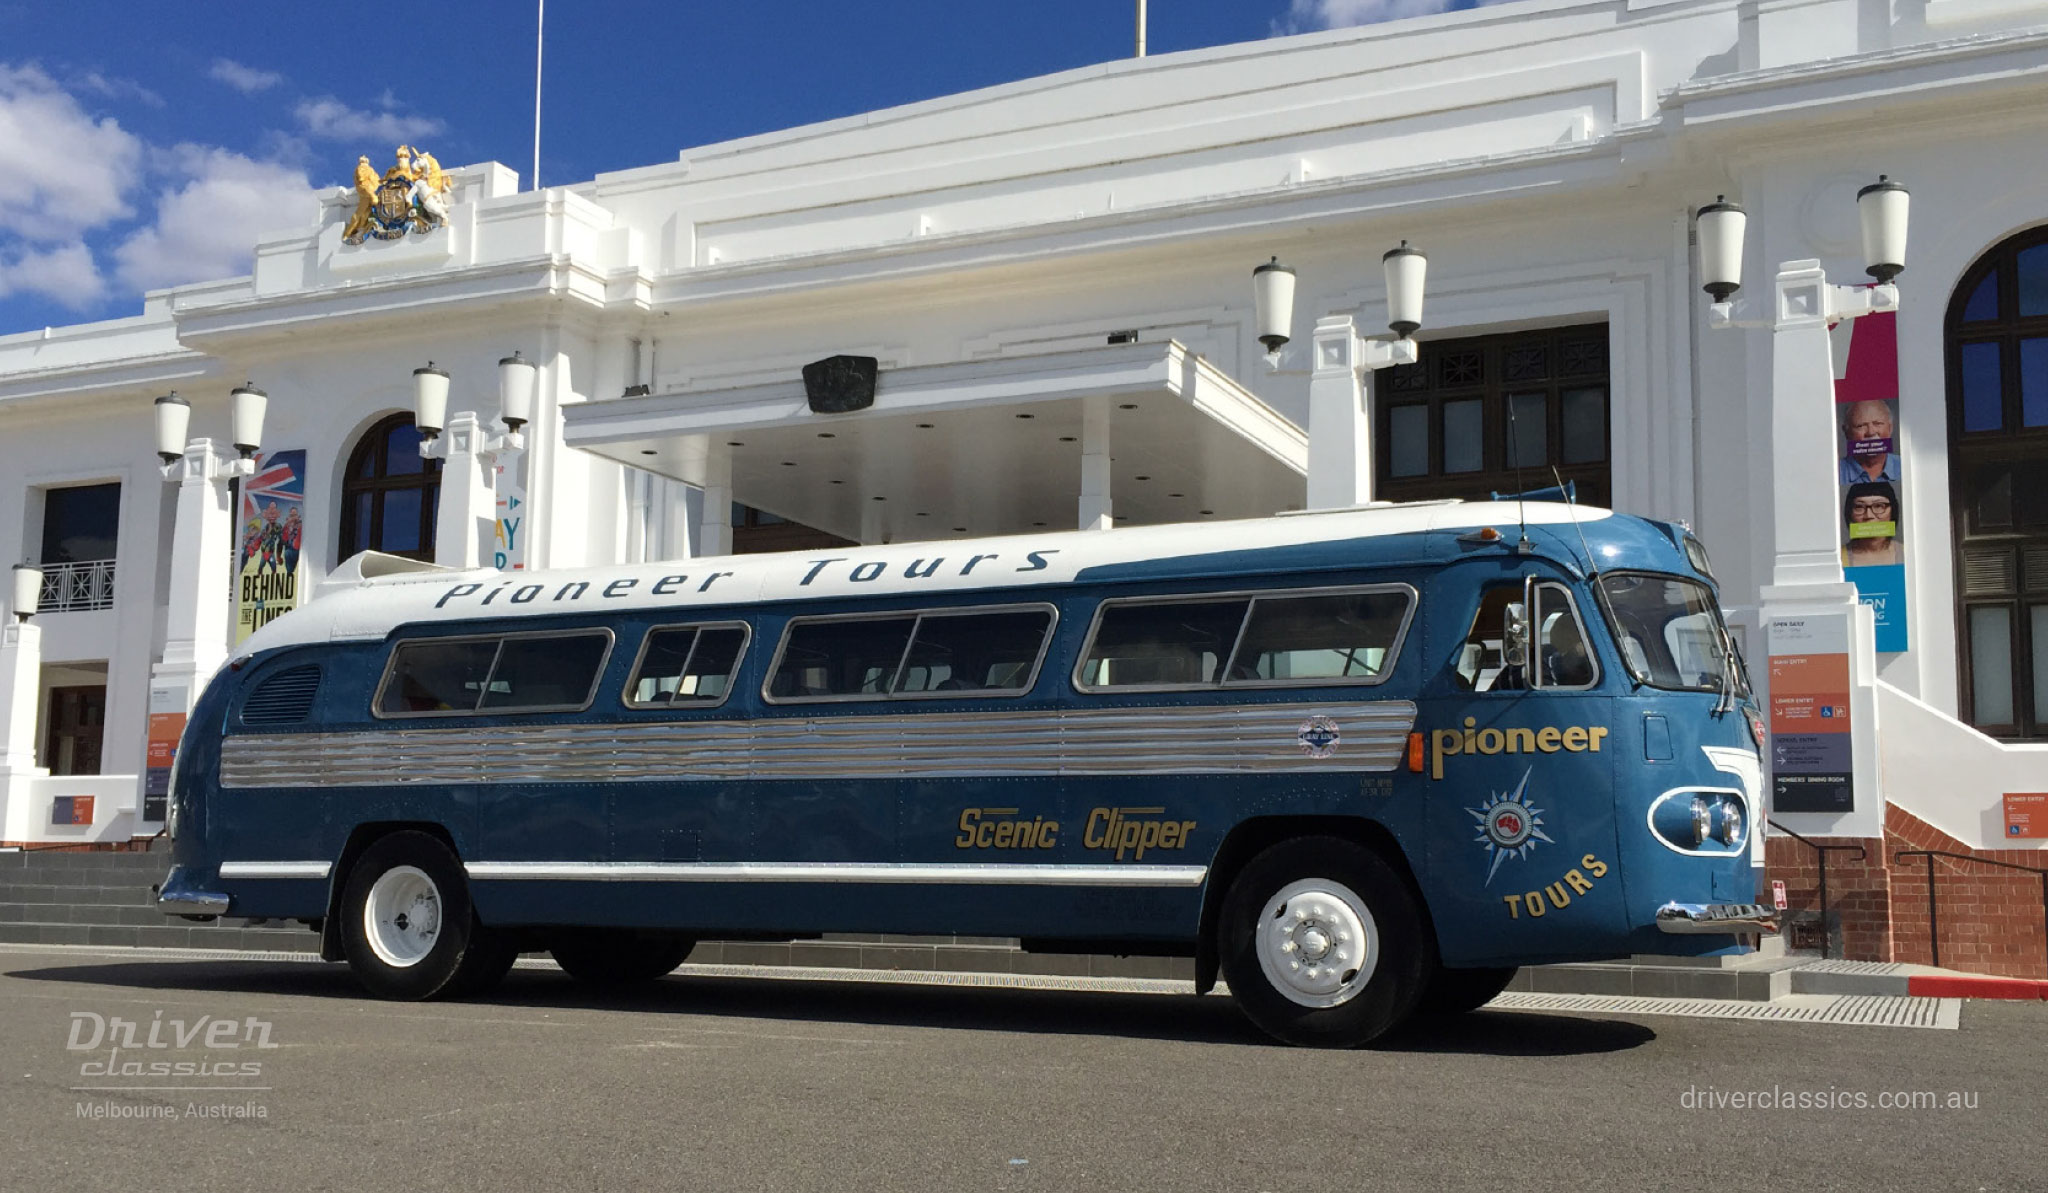 1954 Flxible Clipper bus at Old Parliament House